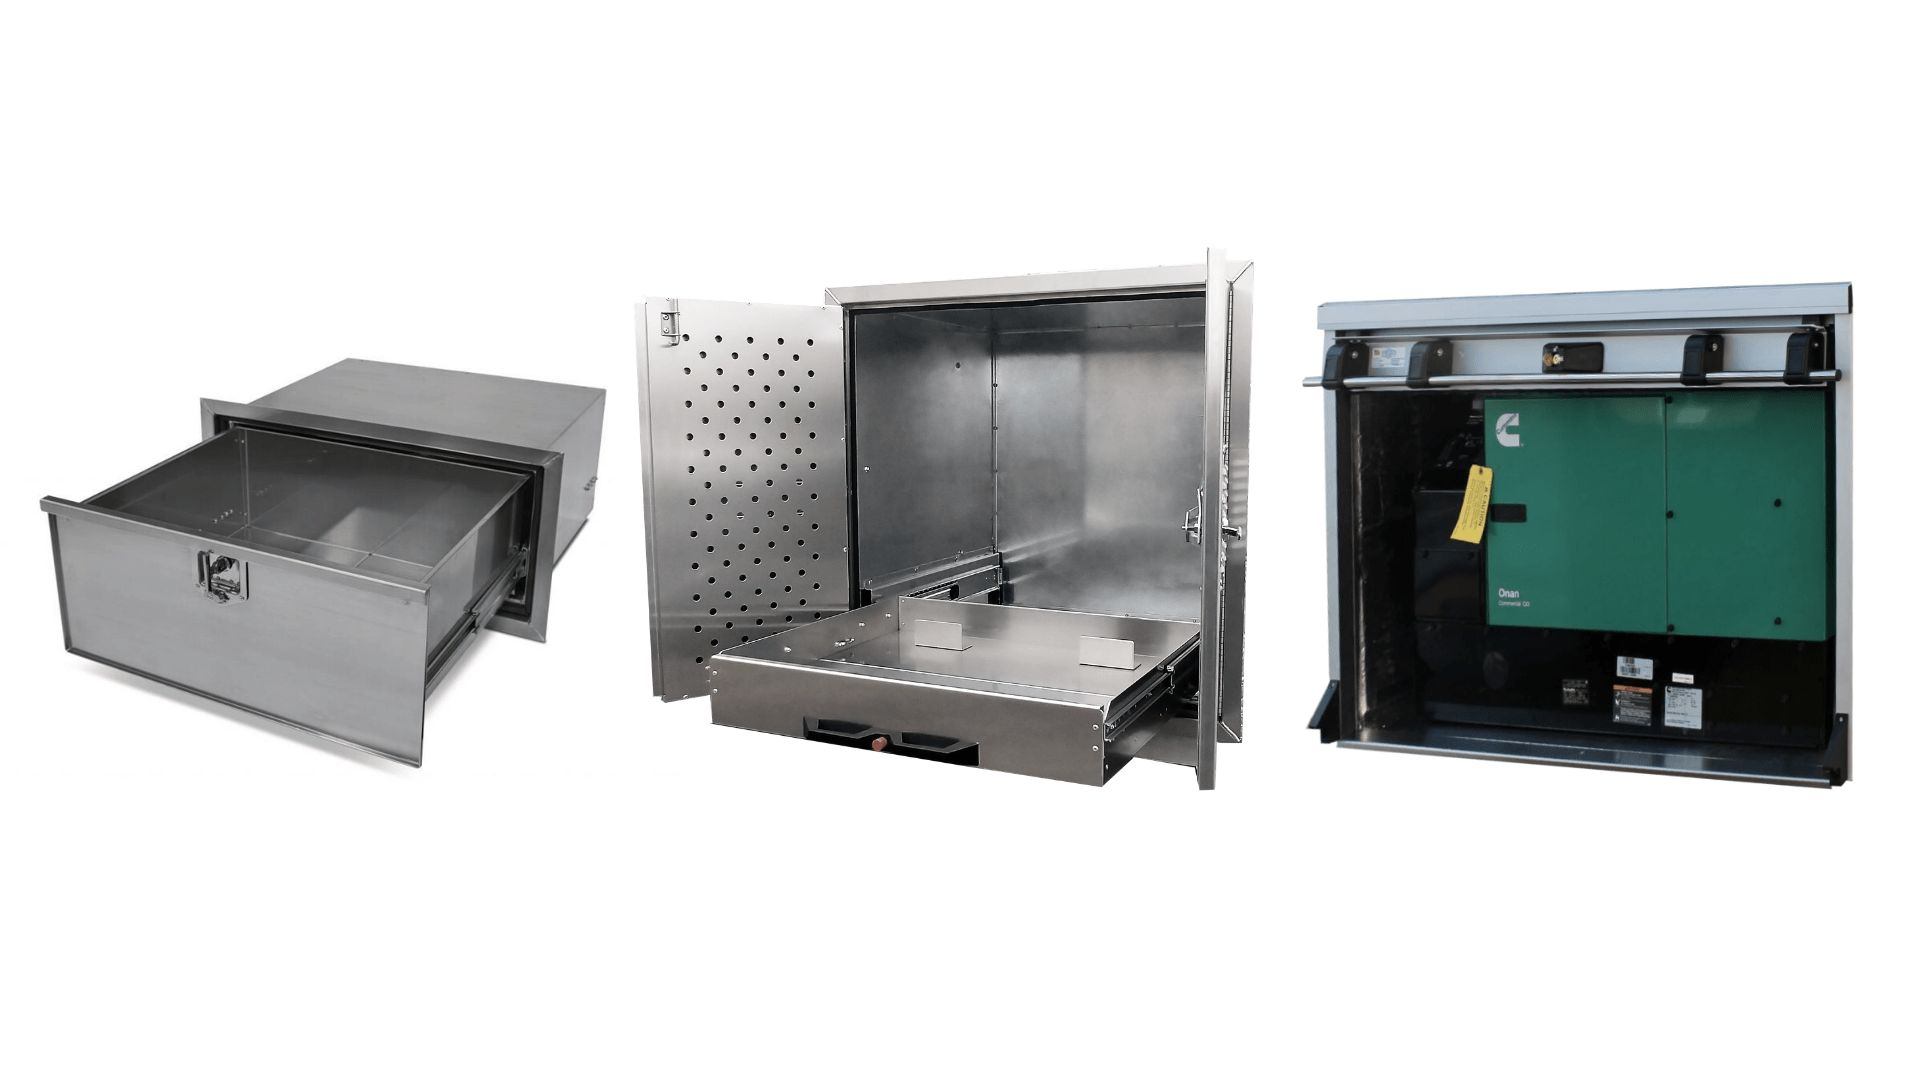 EZ STAK Exterior Cabinets for Trailers